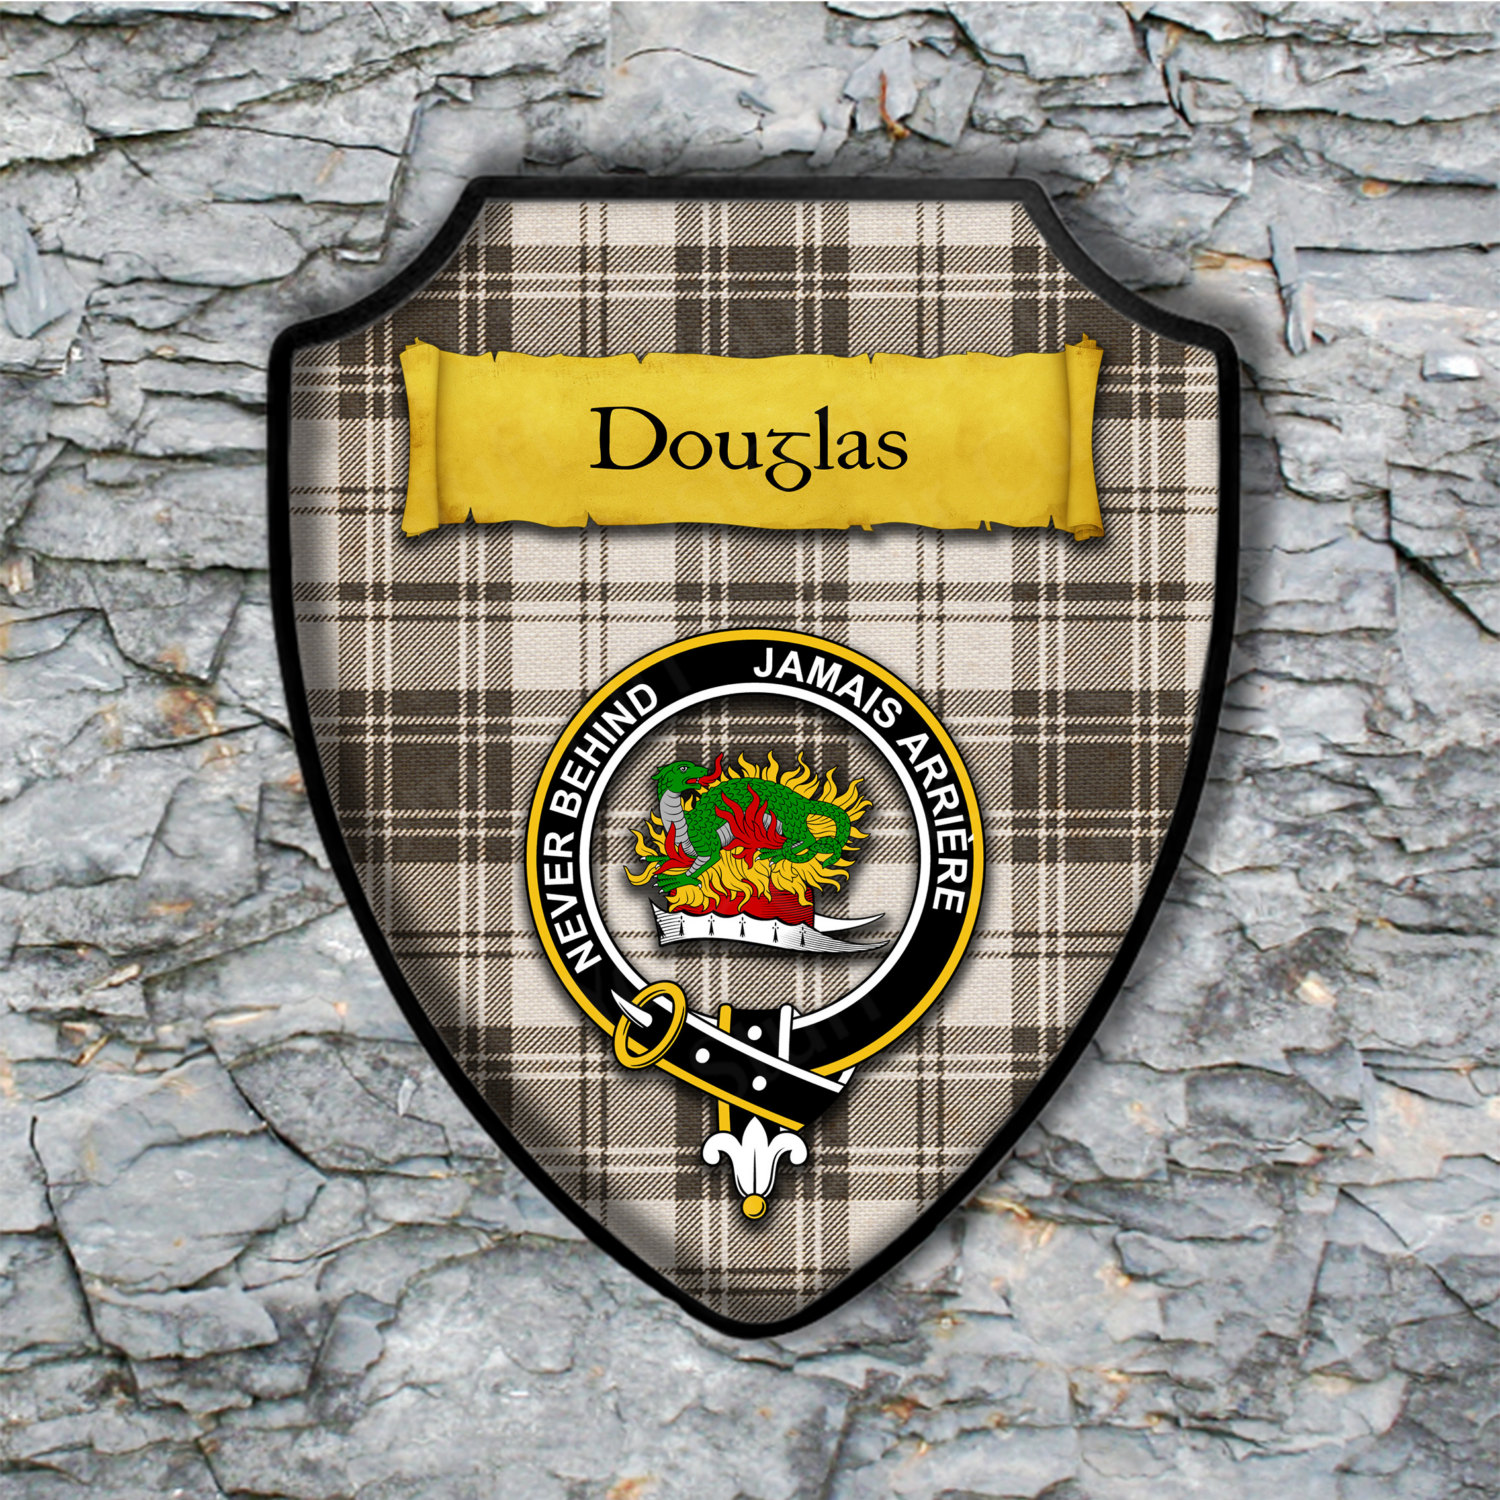 Douglas Shield Plaque with Scottish Clan Coat of Arms Badge on Clan Plaid Tartan Background Wall Art